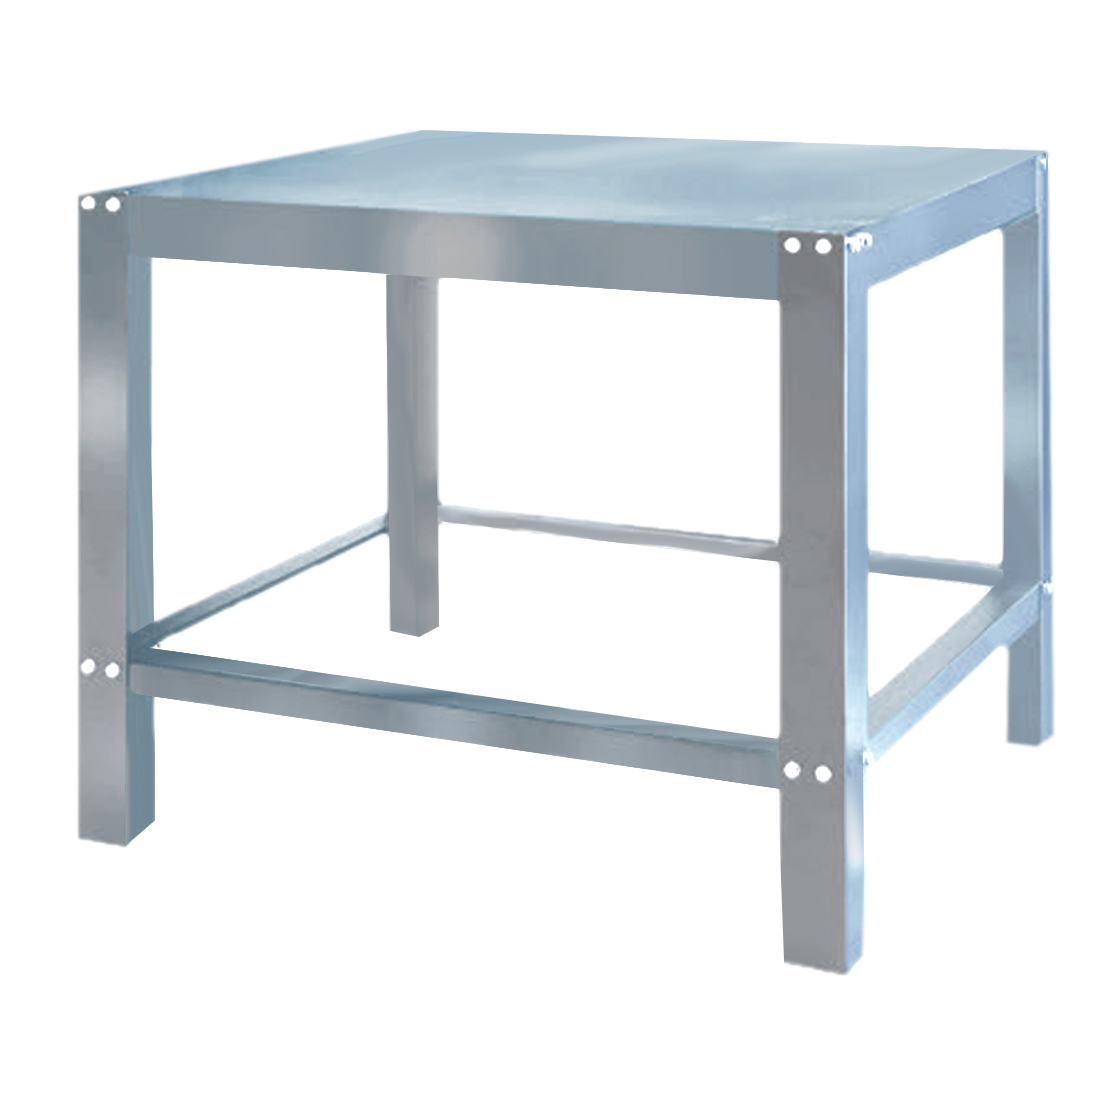 TP-2-S Stainless Steel Stand